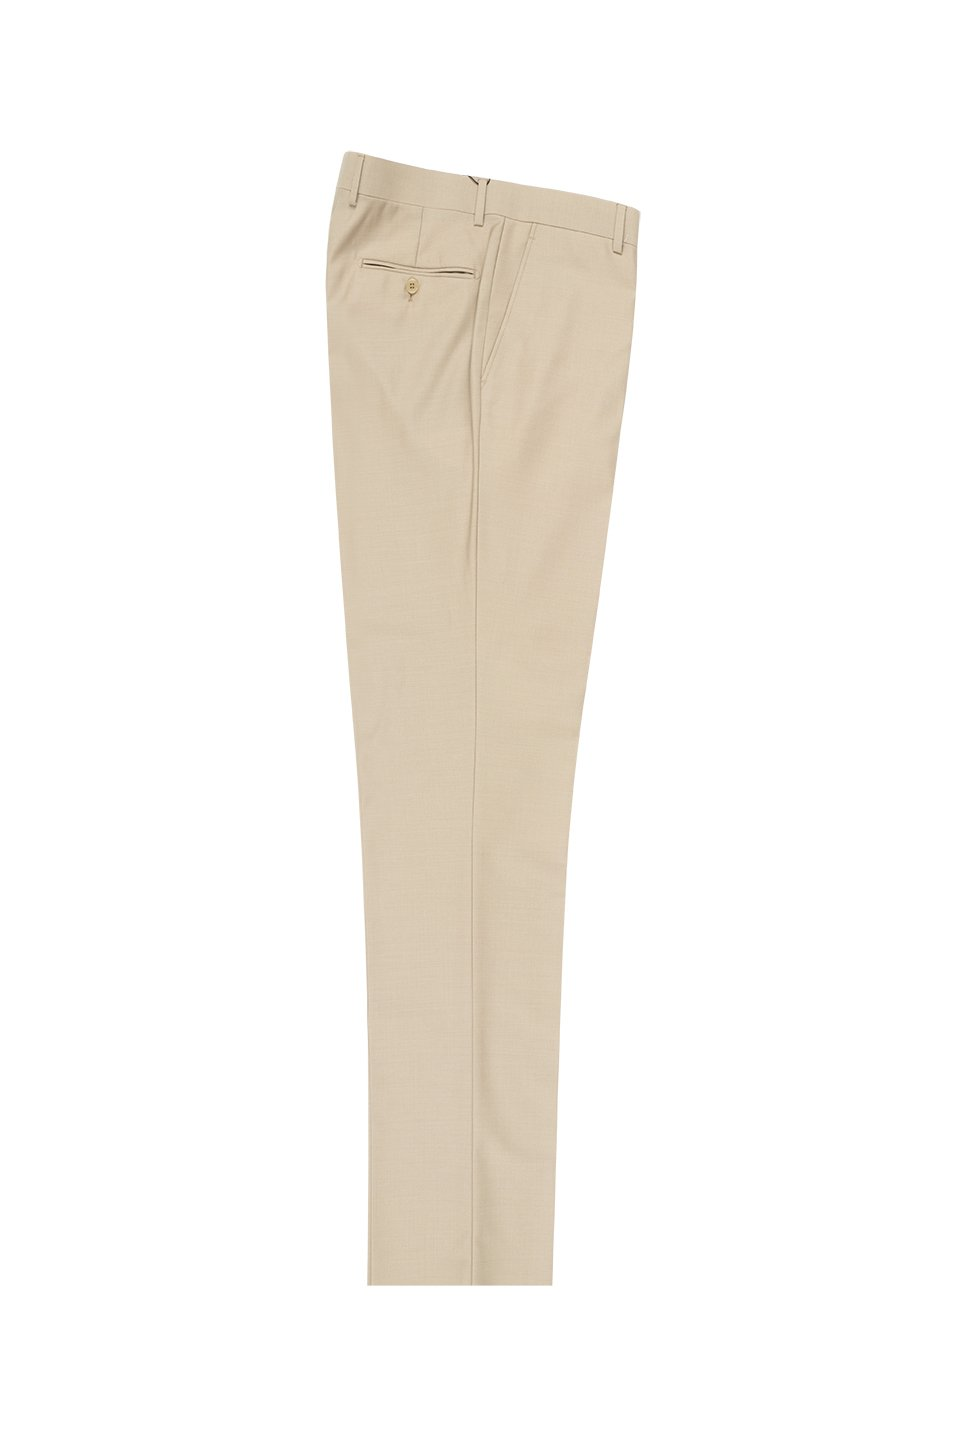 Tiglio Tan Solid Flat Front Dress Pants